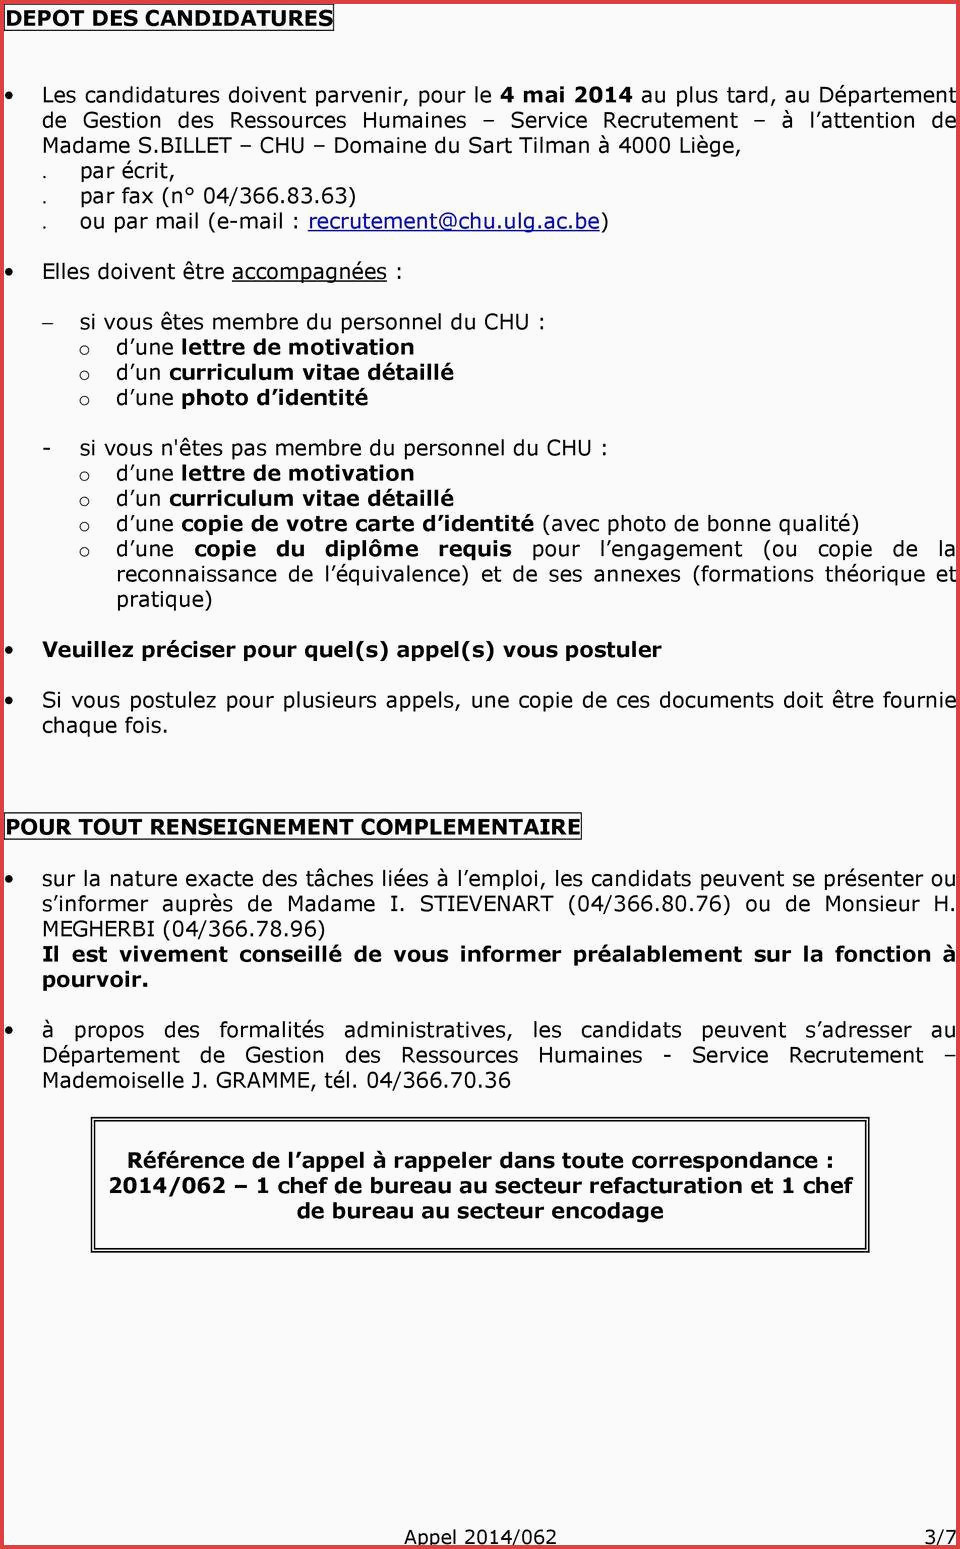 Exemple Lettre De Motivtion Exemple Lettre De Motivation Infirmier Nouveau Pdf Treatment